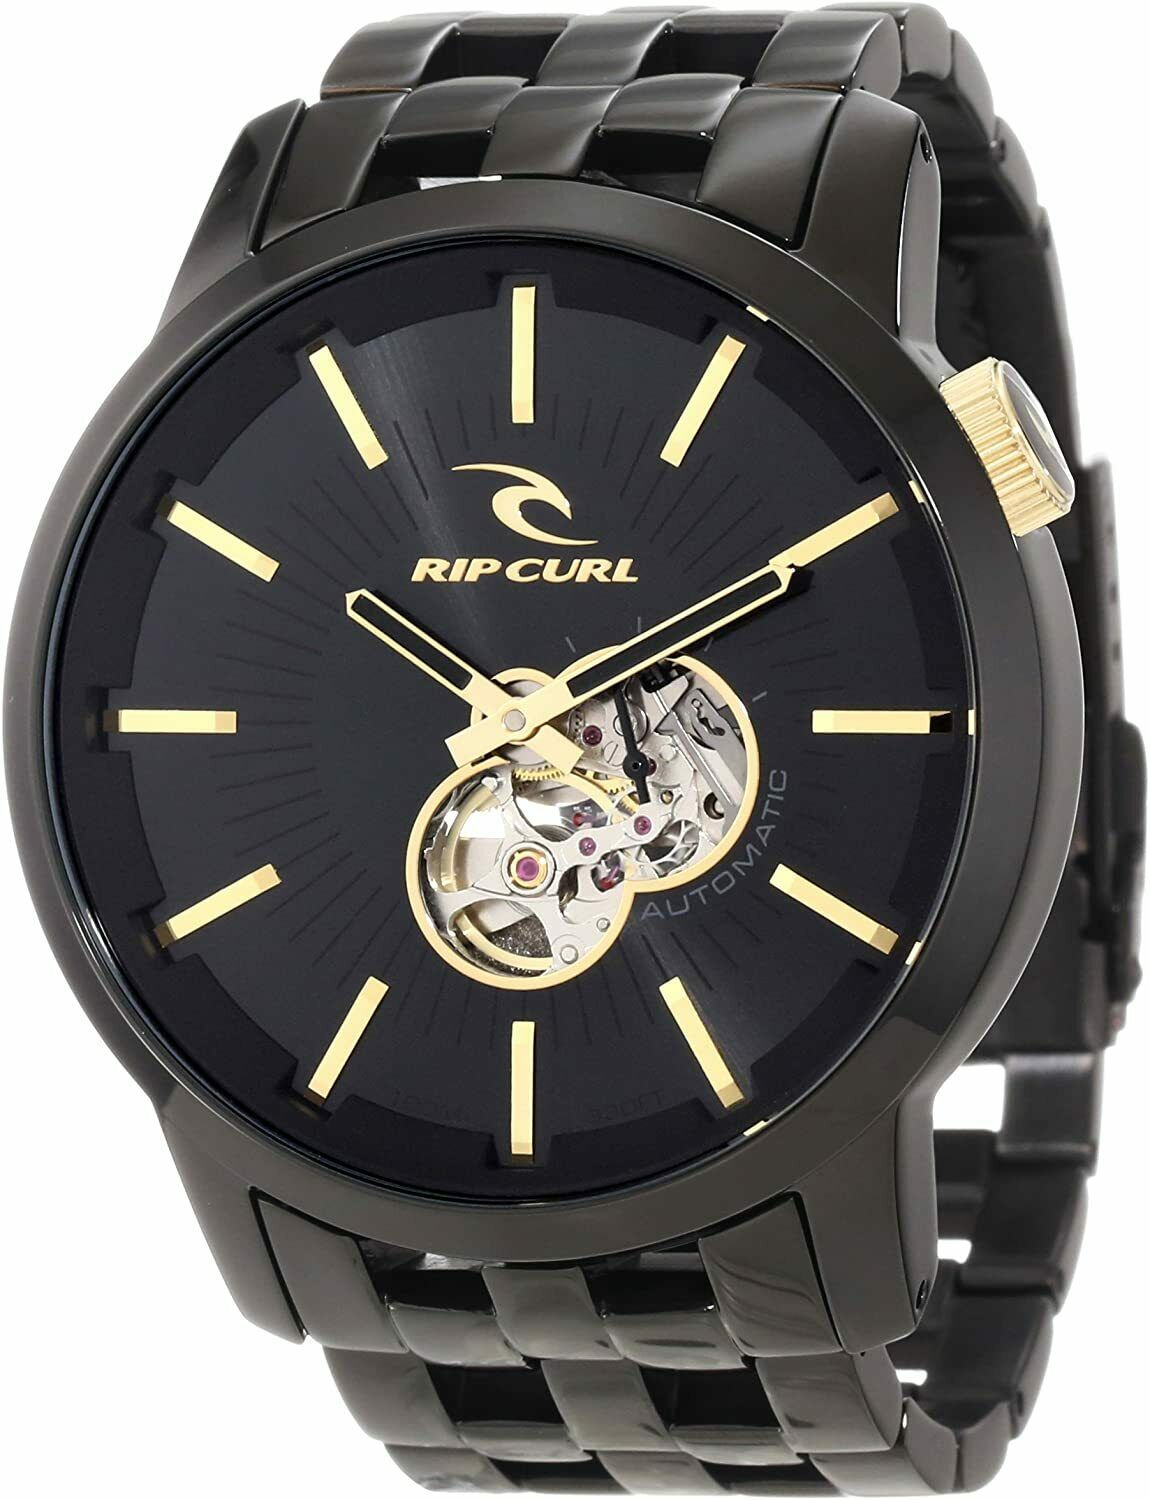 Rare Rip Curl Detroit A2405 Automatic Men's Watch Stainless Steel 100M 21 Jewels